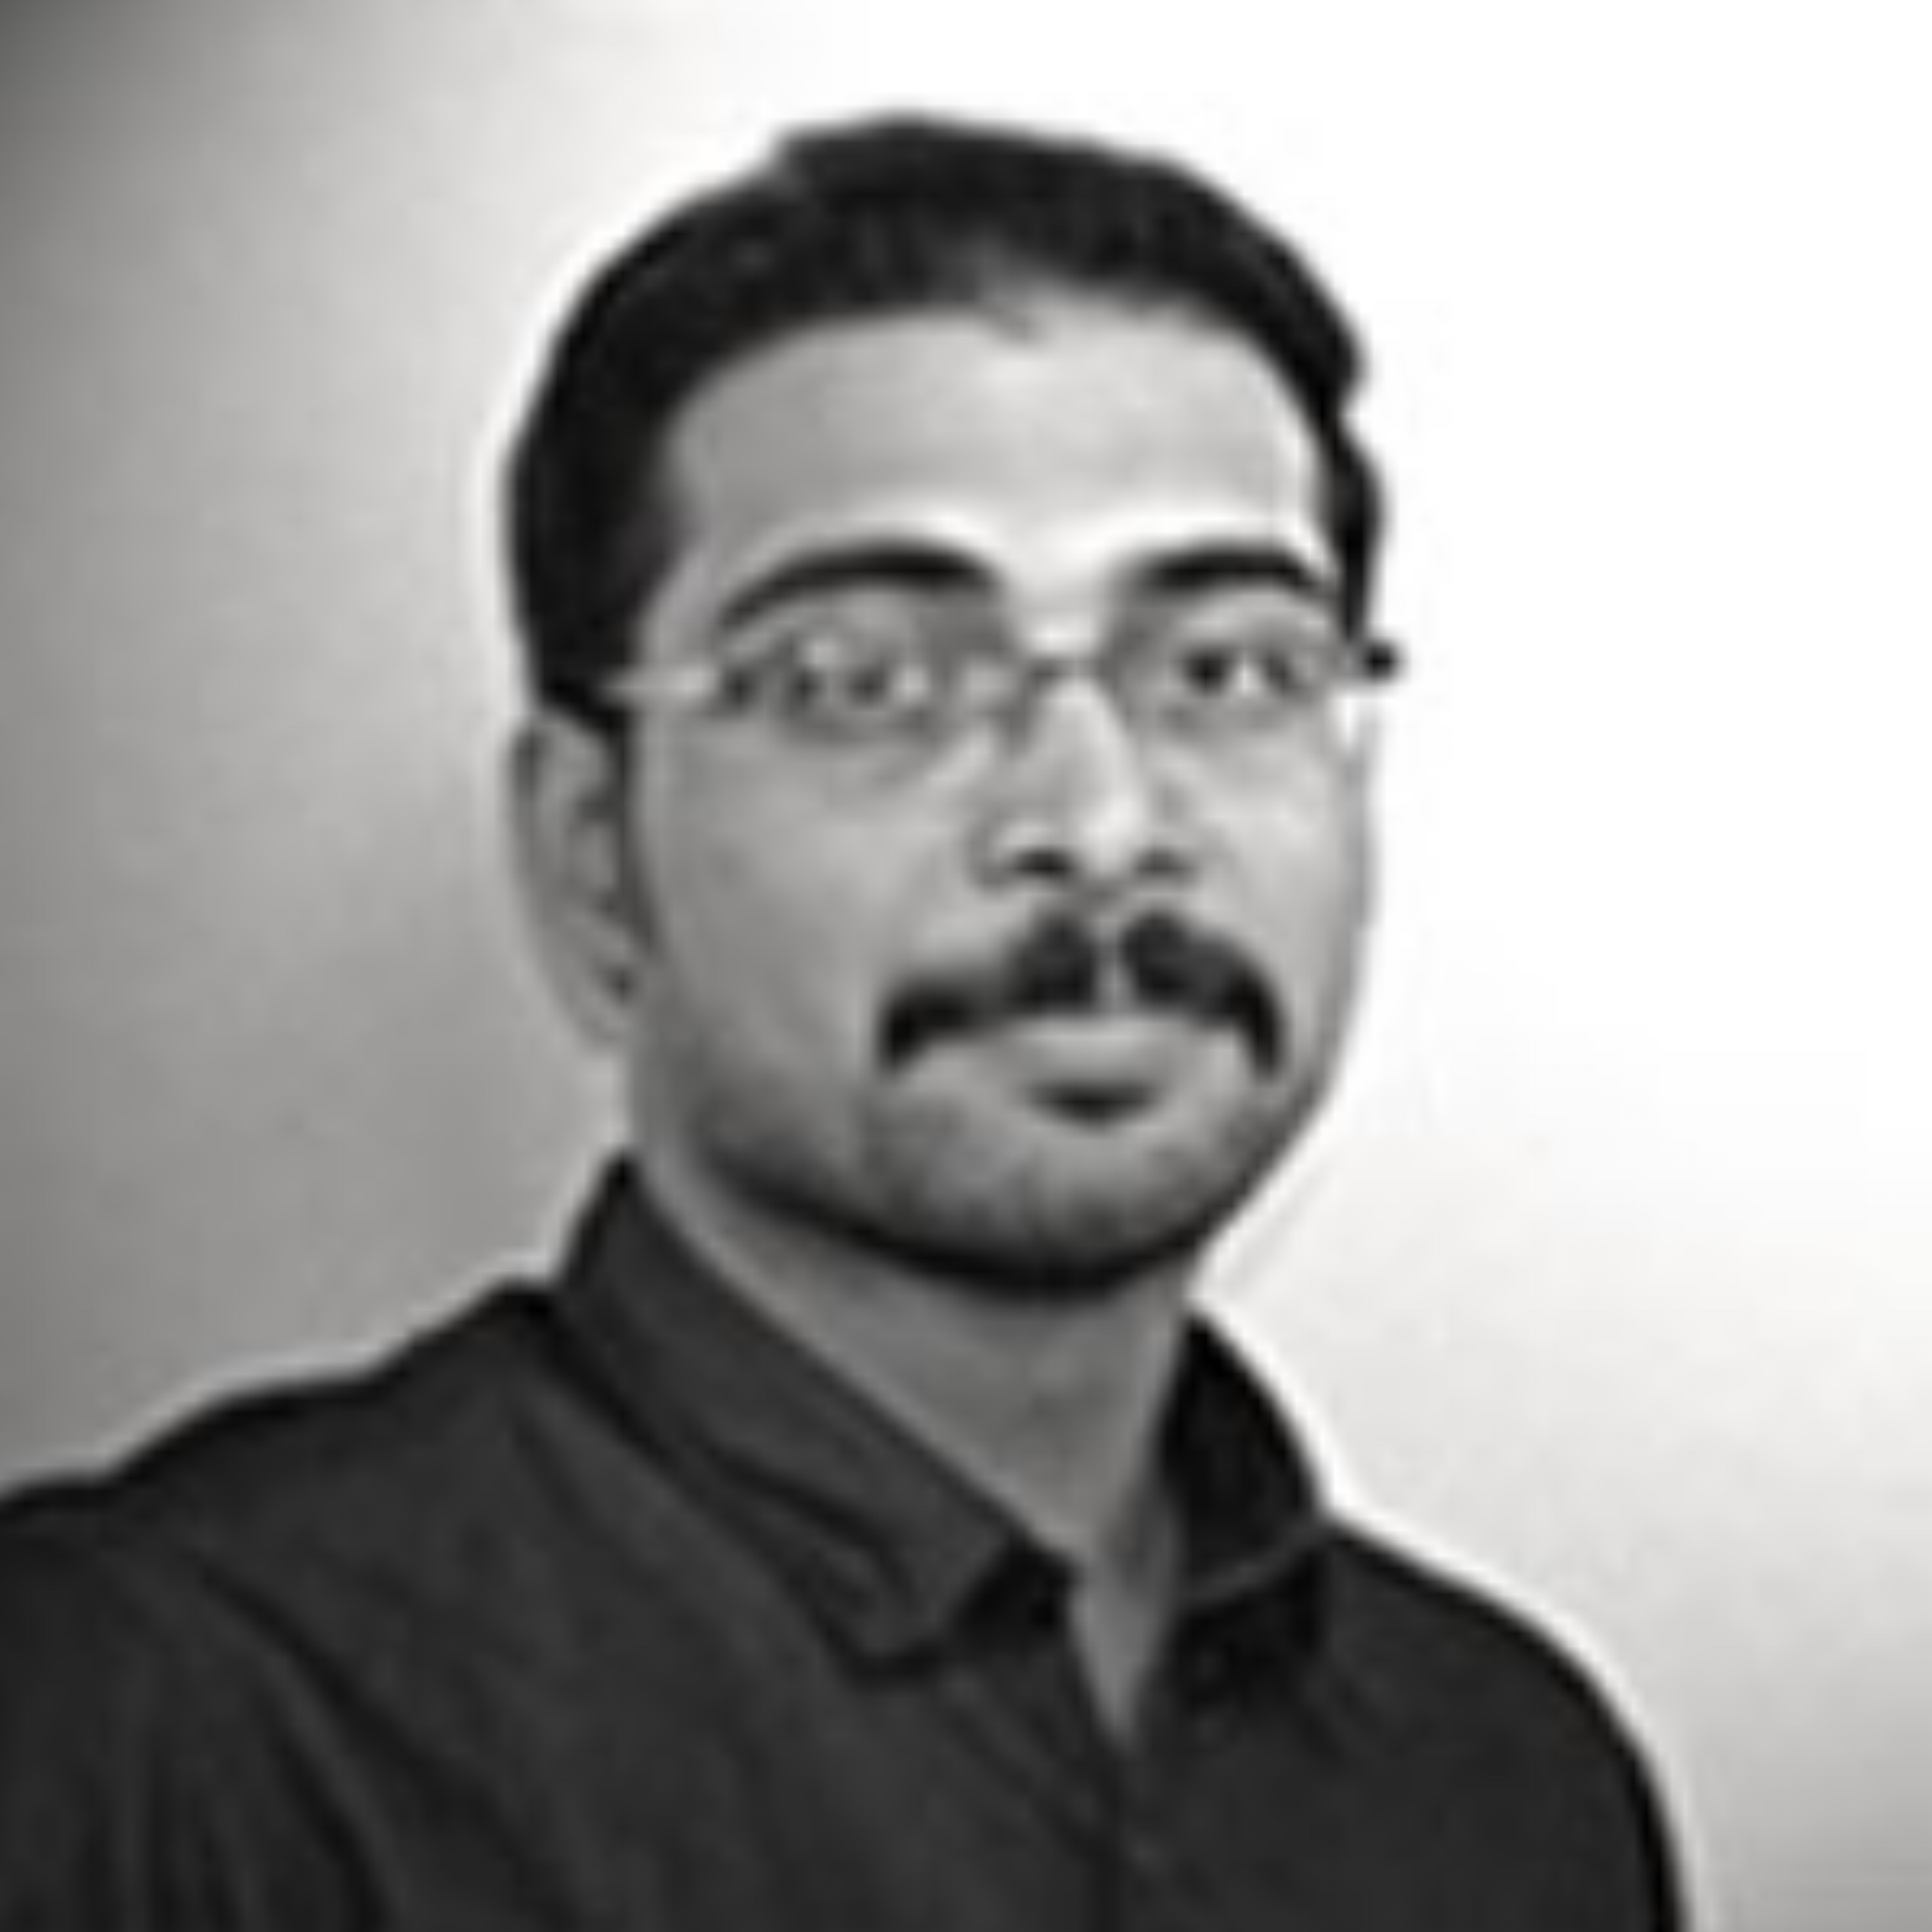 Prakash Rajiah - Firmware Engineer   Prakash joined the shimmer team in early 2017 as a firmware engineer. Having graduated from the Anna University, Chennai with a Bachelors degree in Electronics and Communication in Engineering in 2007-2011, he followed his masters in Mobile and Pervasive Computing. Most recently he completed his PhD from the same institution in the area of Real-Time Wireless Body Sensor Network.  Prior to joining shimmer, Prakash worked as a Research Associate on Department of Science and Technology, Govt of India sanctioned Project. His PhD program provides him to developed the passion for designing and programming Real-Time Wireless Sensor Networks and IoT Devices.  In his spare time you might find Prakash exploring EFY Magazine and tiny projects. He is a sports enthusiast and likes playing volleyball and other games.